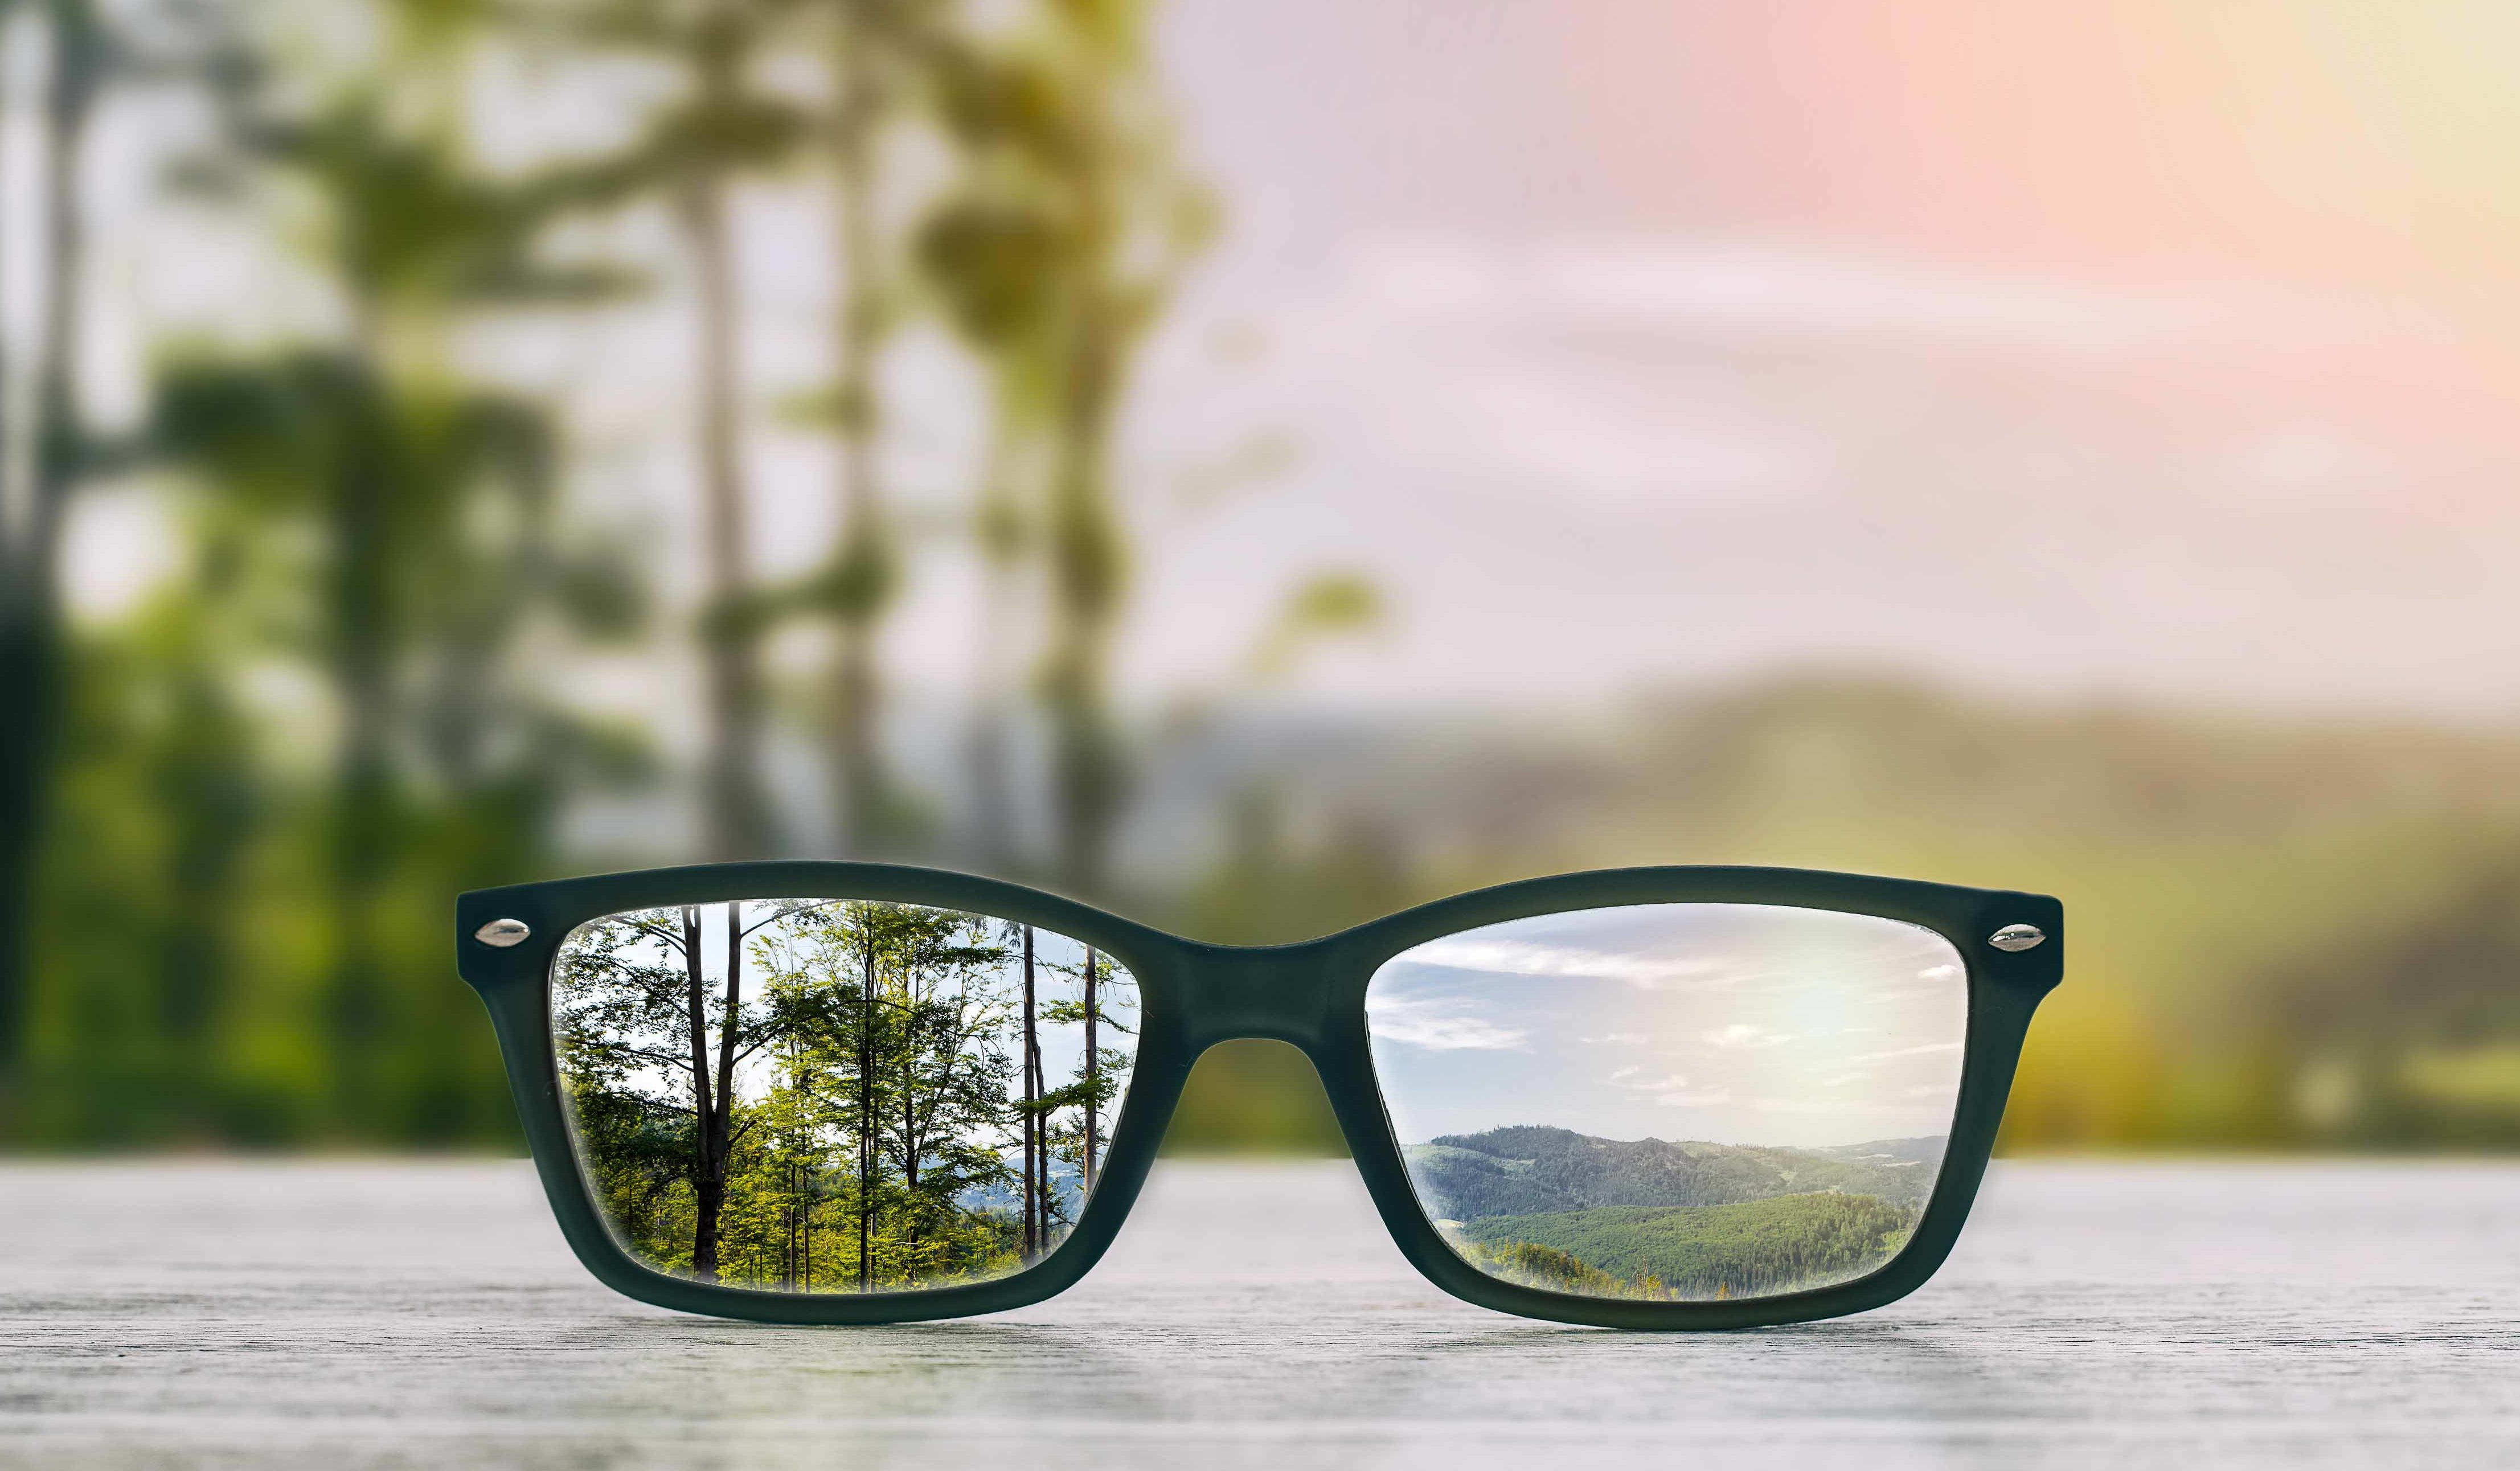 How Does Your Worldview Affect Your Leadership?